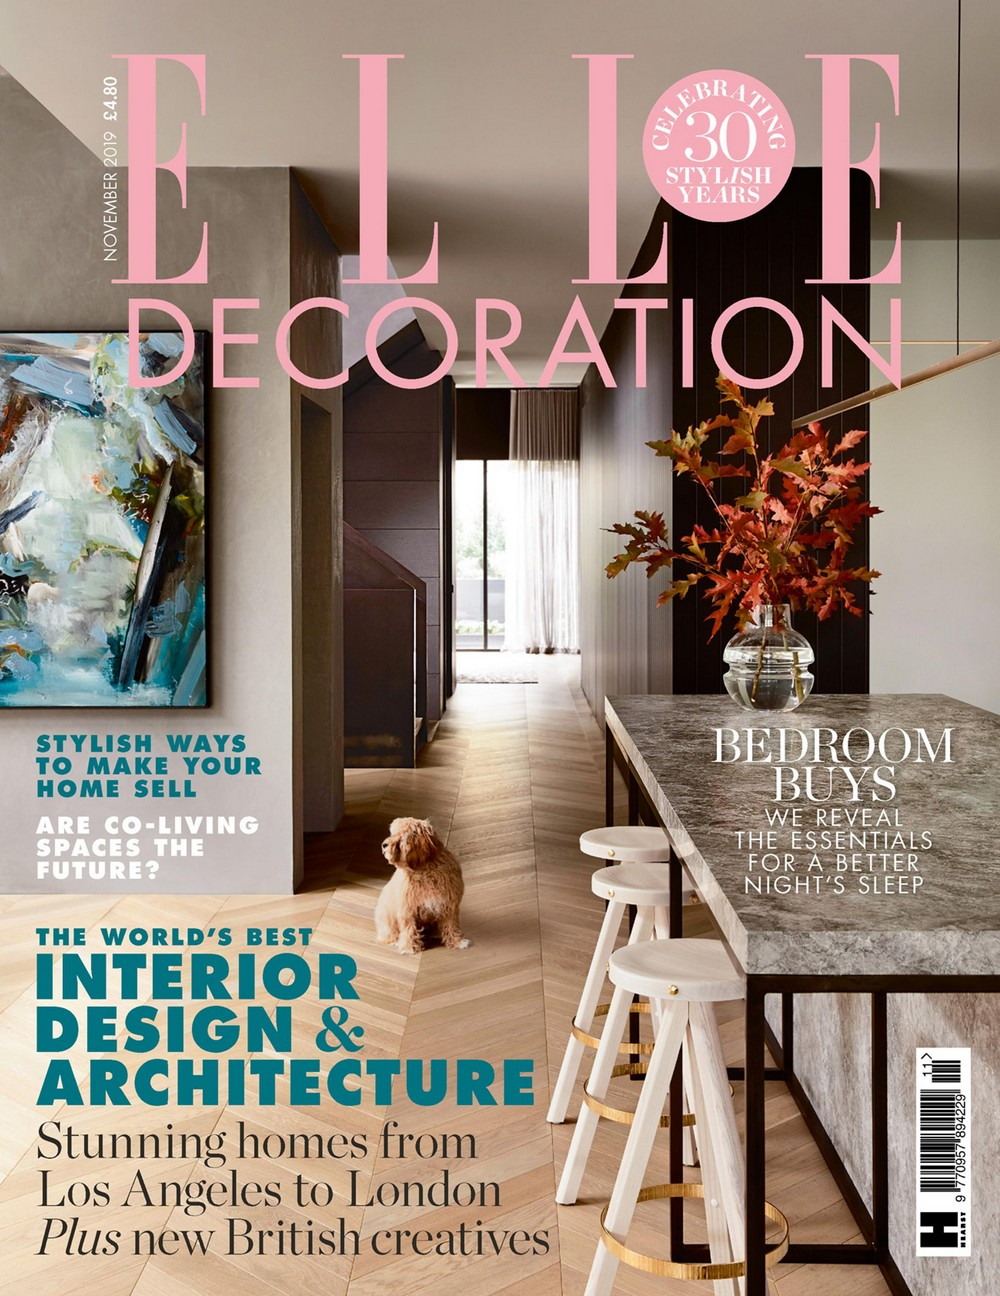 Top 7 Interior Design Magazines You Should Buy In November! interior design magazines Top 7 Interior Design Magazines You Should  Buy In November! Top 7 Interior Design Magazines You Should Buy In November 5